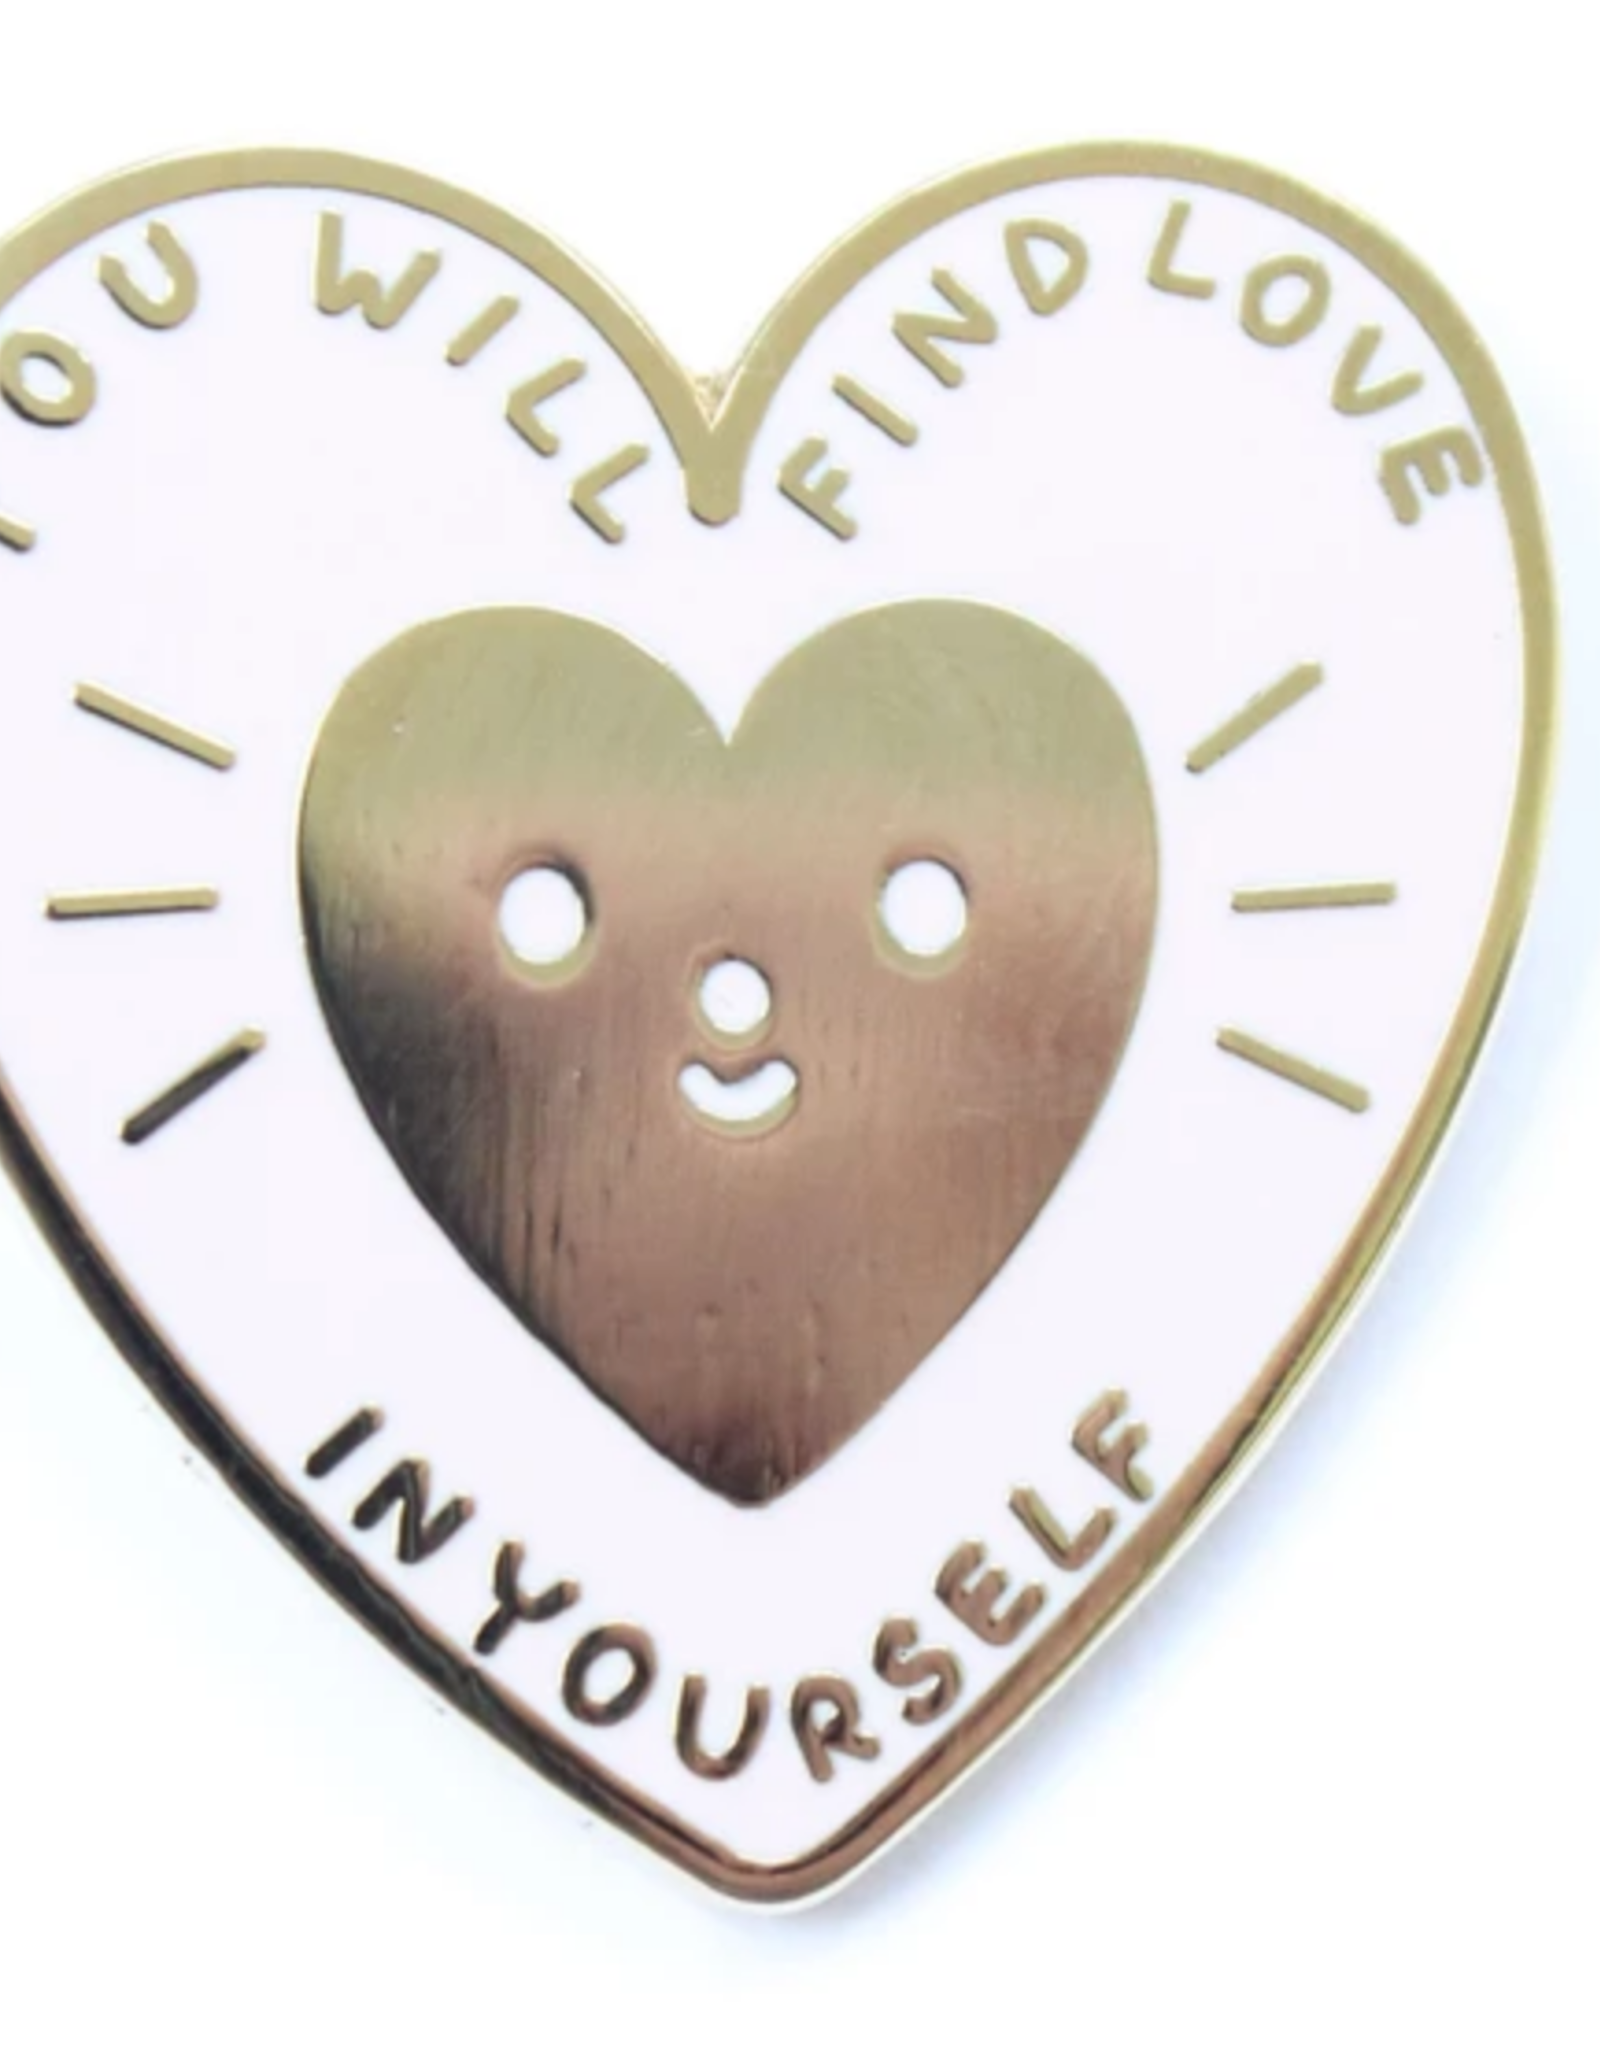 You Will Find Love in Yourself Pin